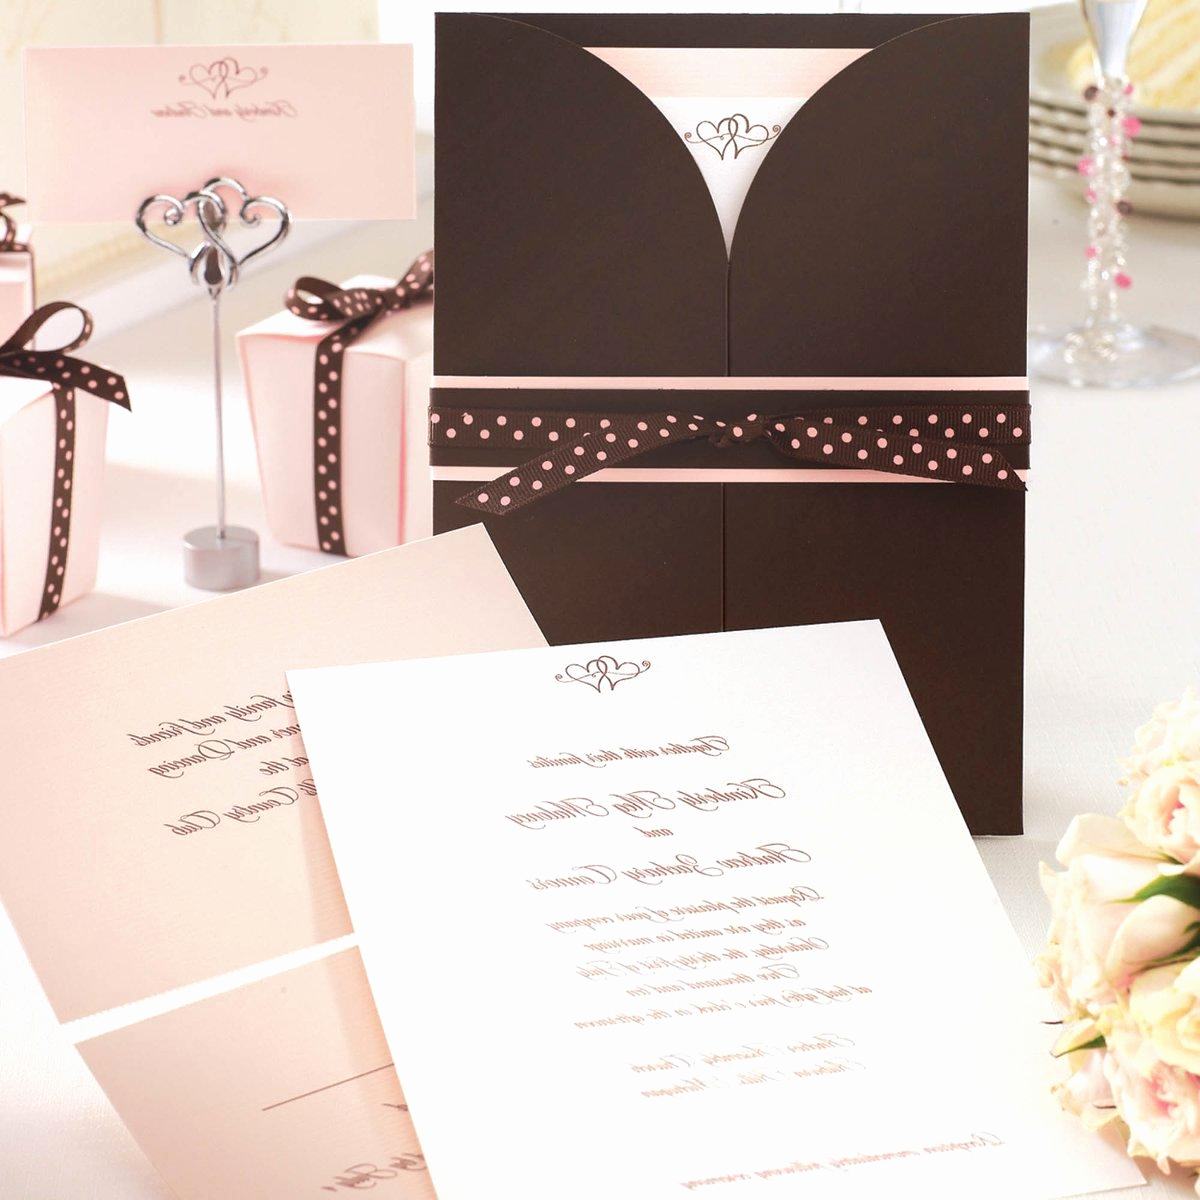 Kim Kardashian Wedding Invitation Beautiful Revi S Blog Kim Kardashian and Damon Thomas Wedding S